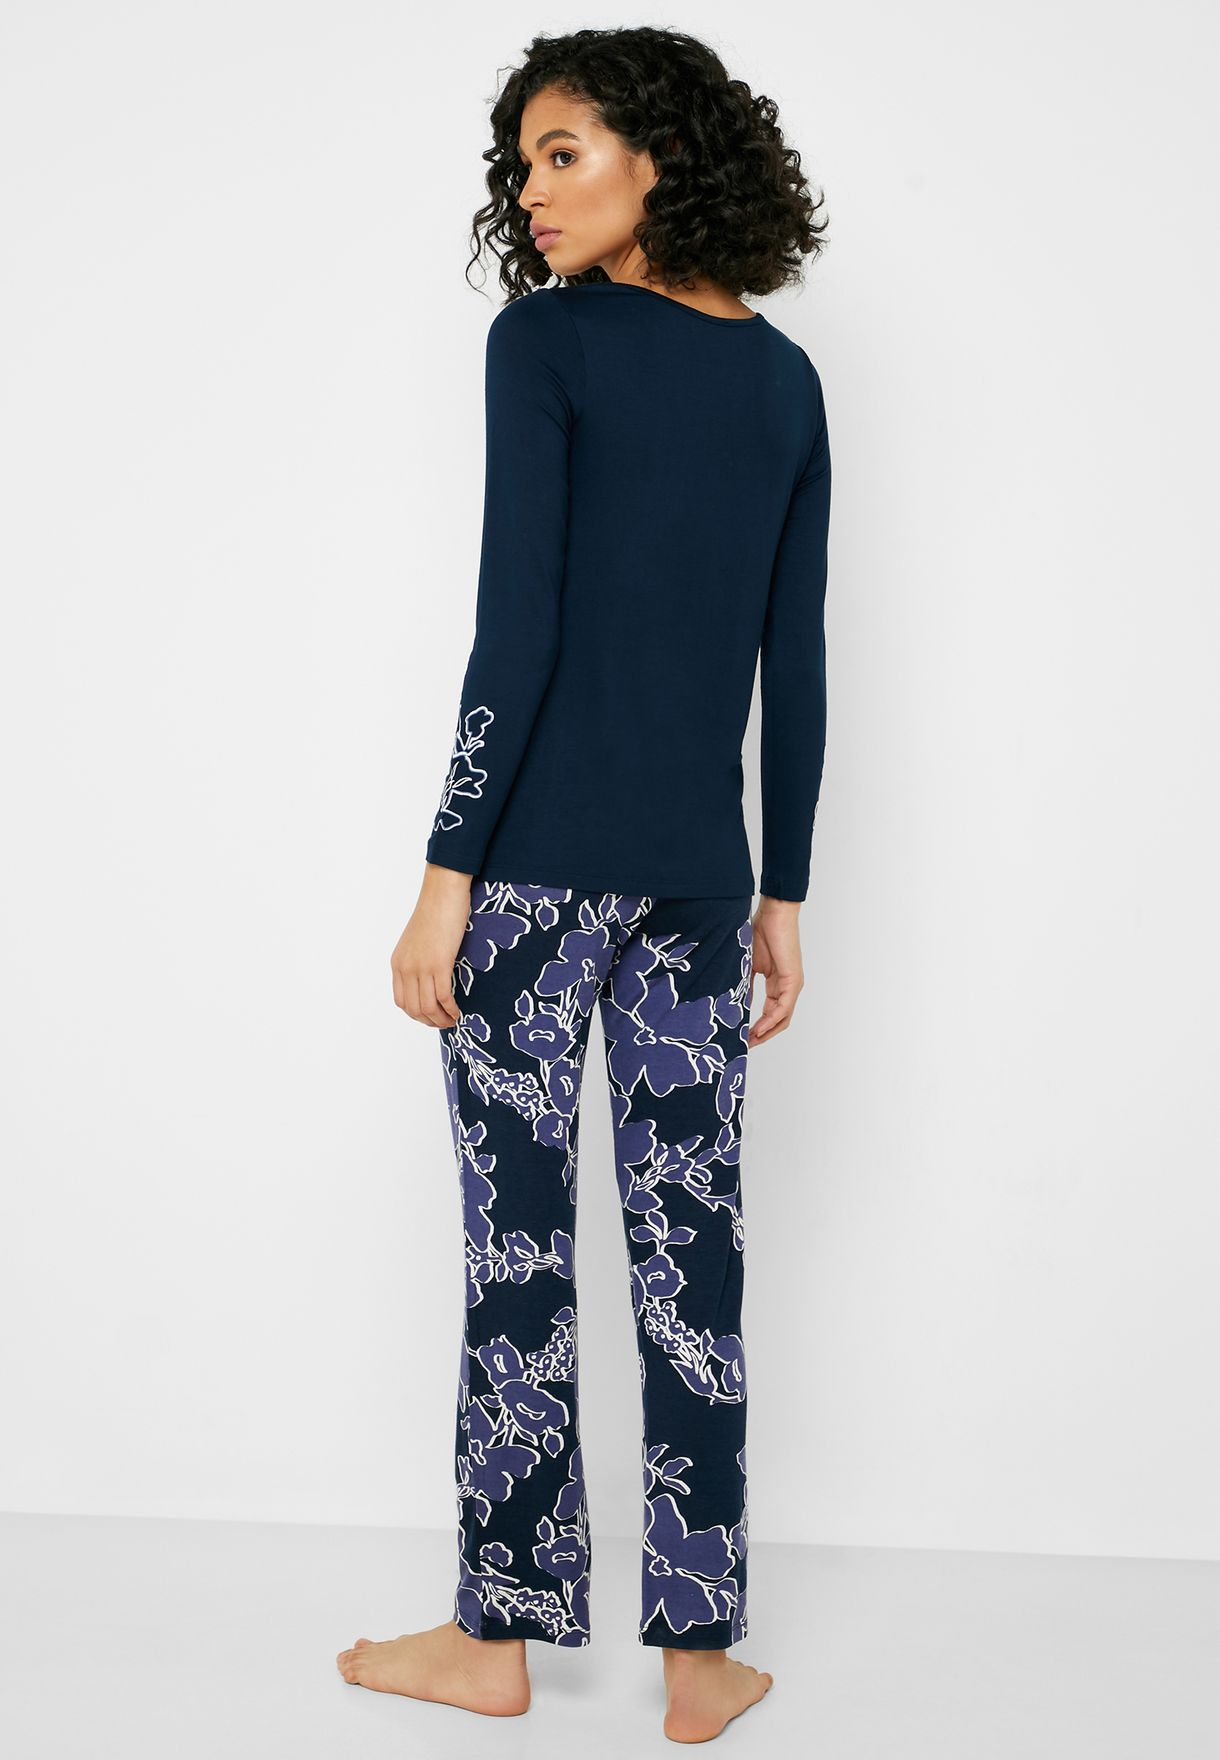 Graphic Cuff T-Shirt & Floral Print Pyjama Set